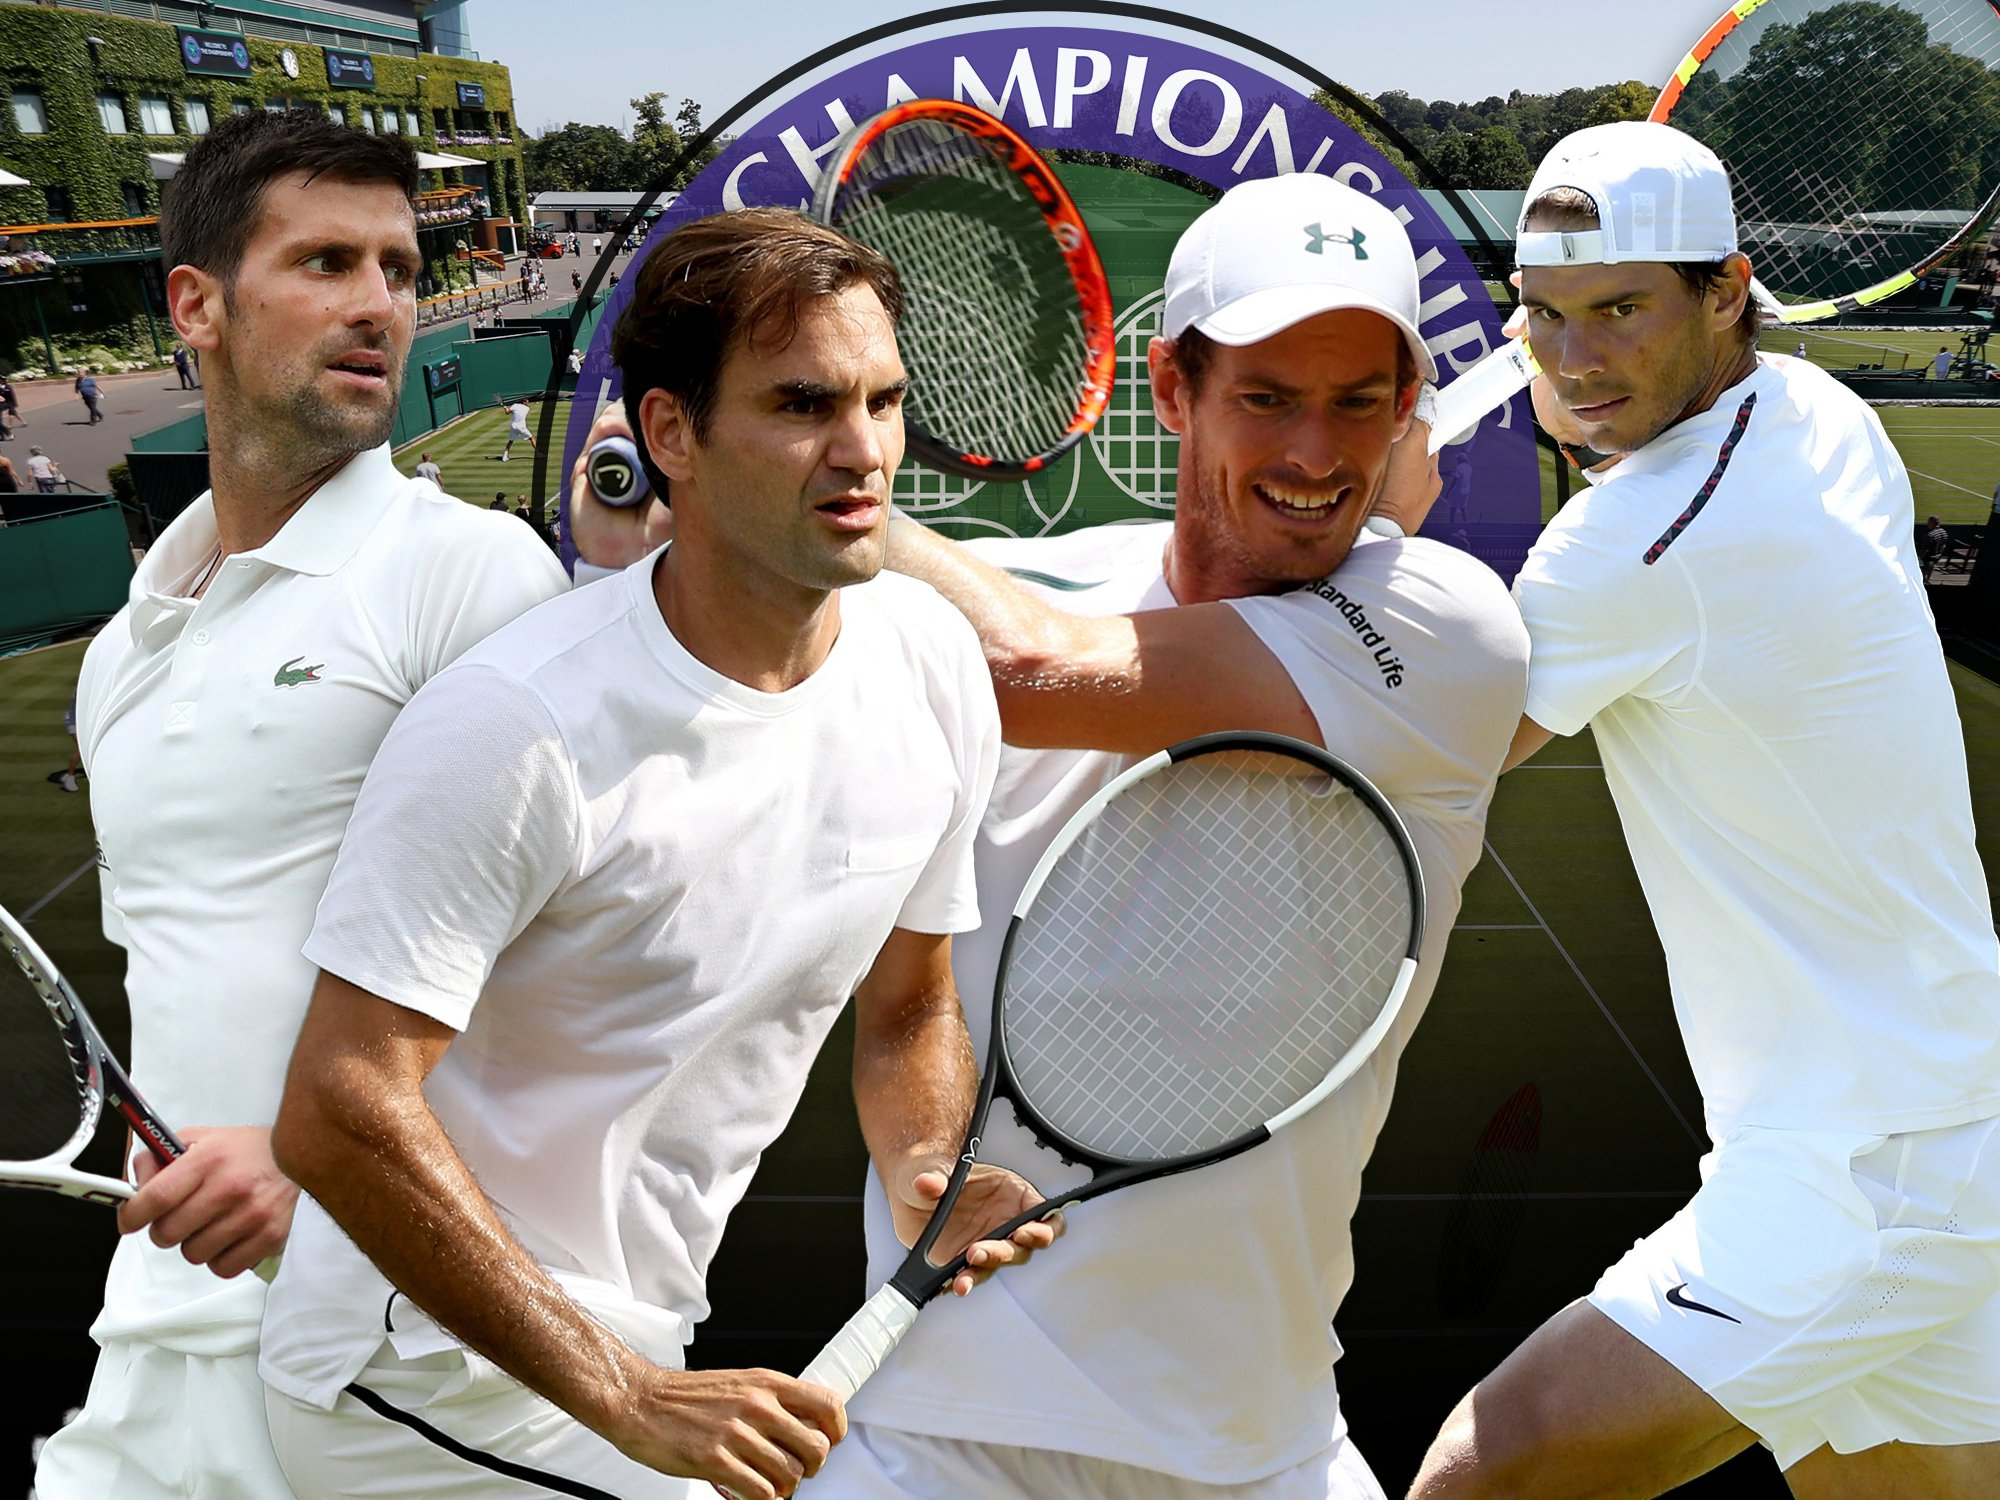 Wimbledon preview: Can anyone deny Roger Federer latest slice of history?